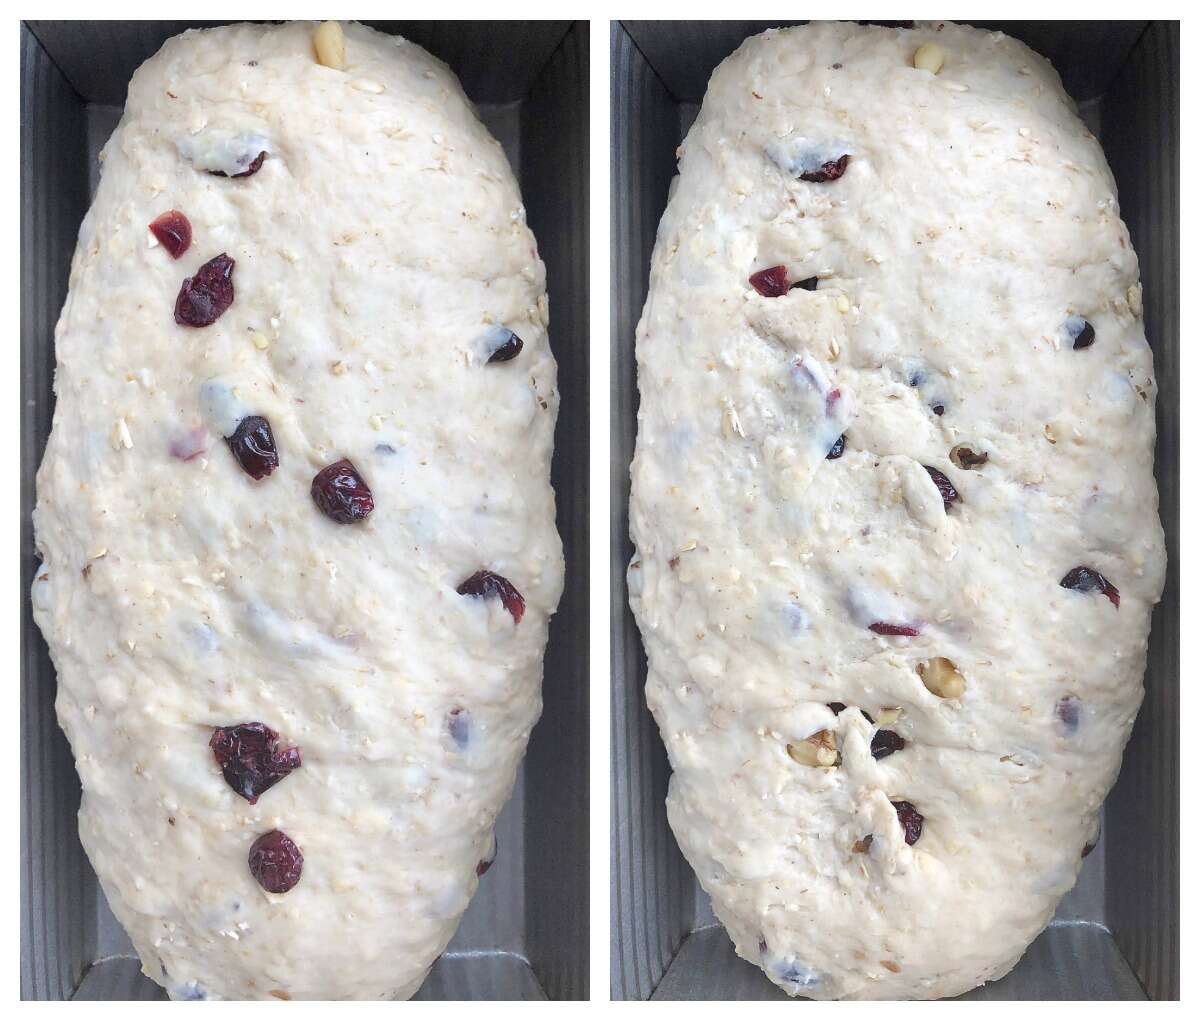 Oatmeal bread dough with cranberries and walnuts showoing how to tuck the fruit and nuts under the surface of the dough so they won't burn